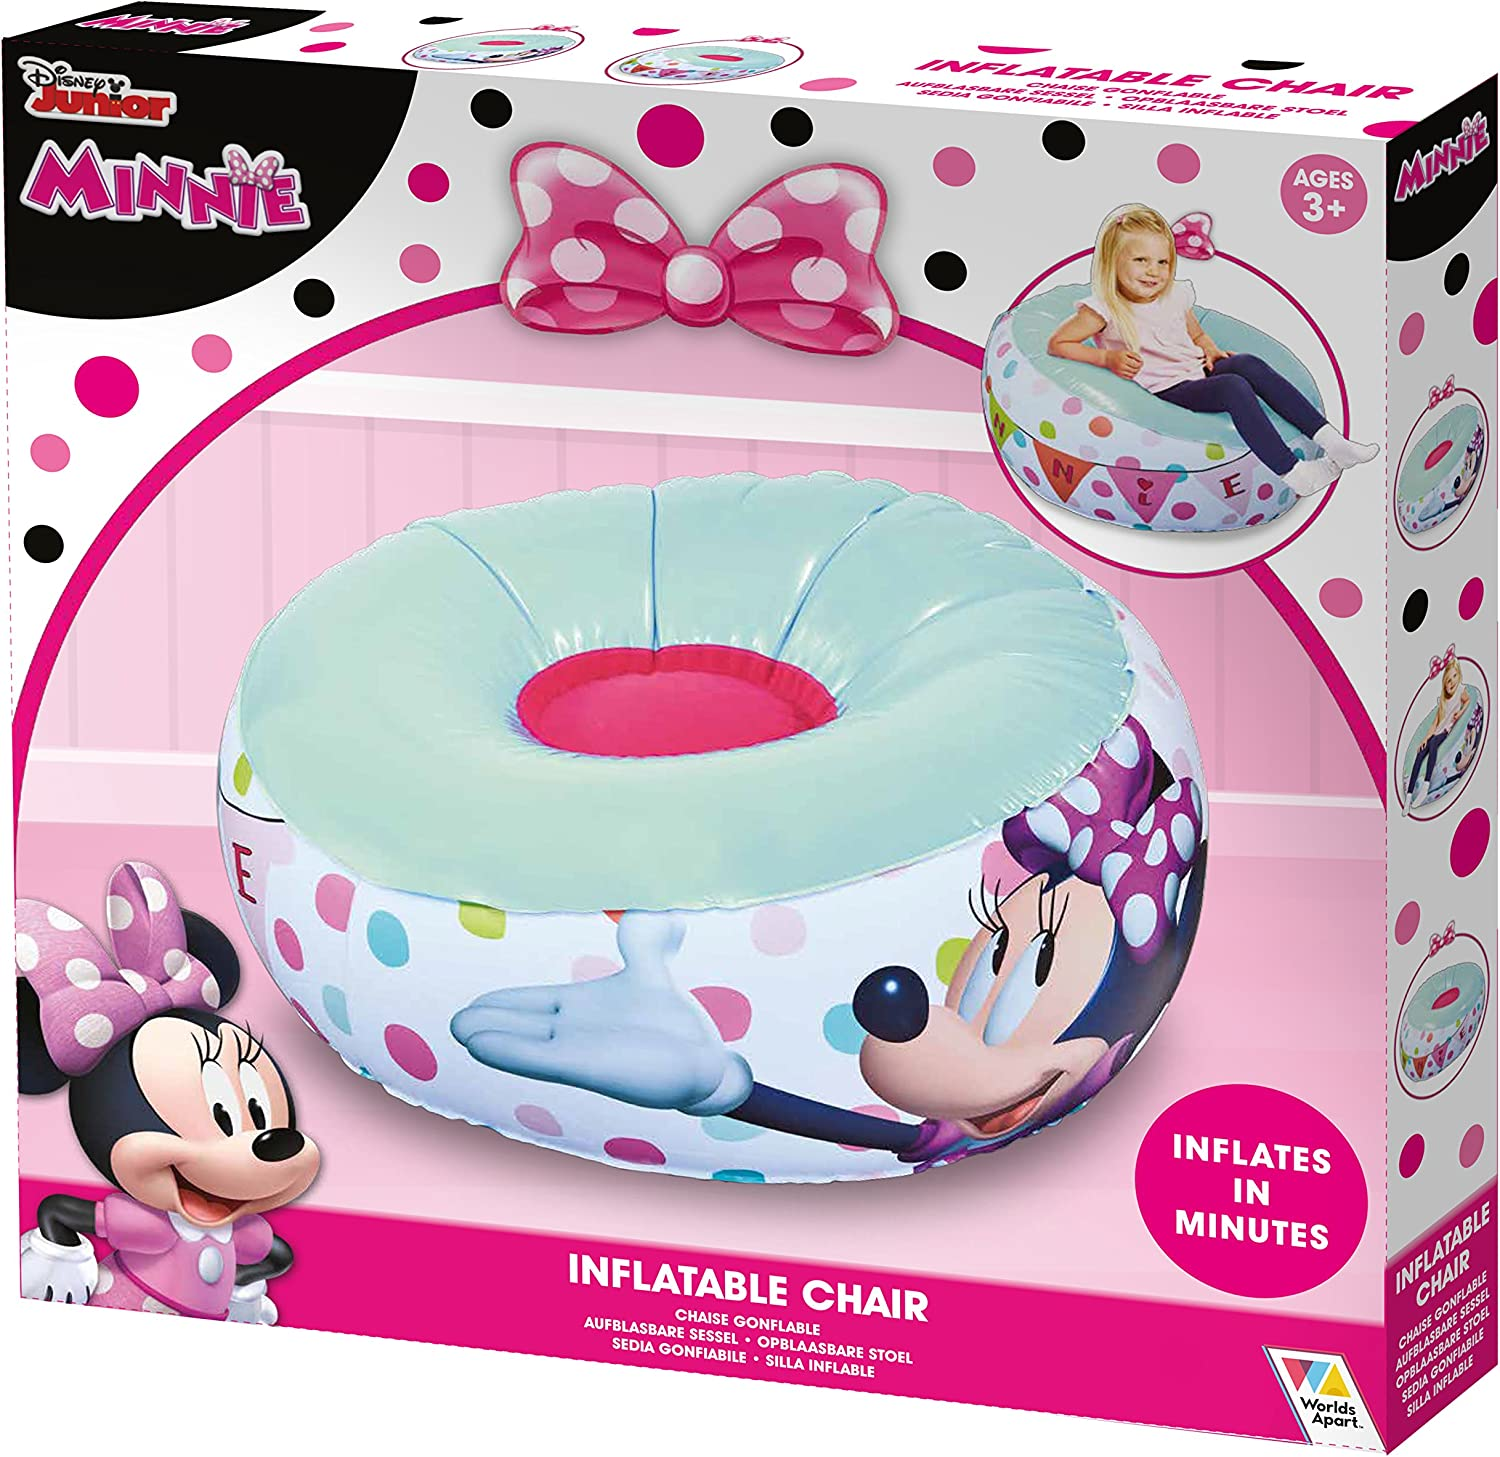 Amazon.com: Minnie Mouse - Silla inflable para niños: Toys ...